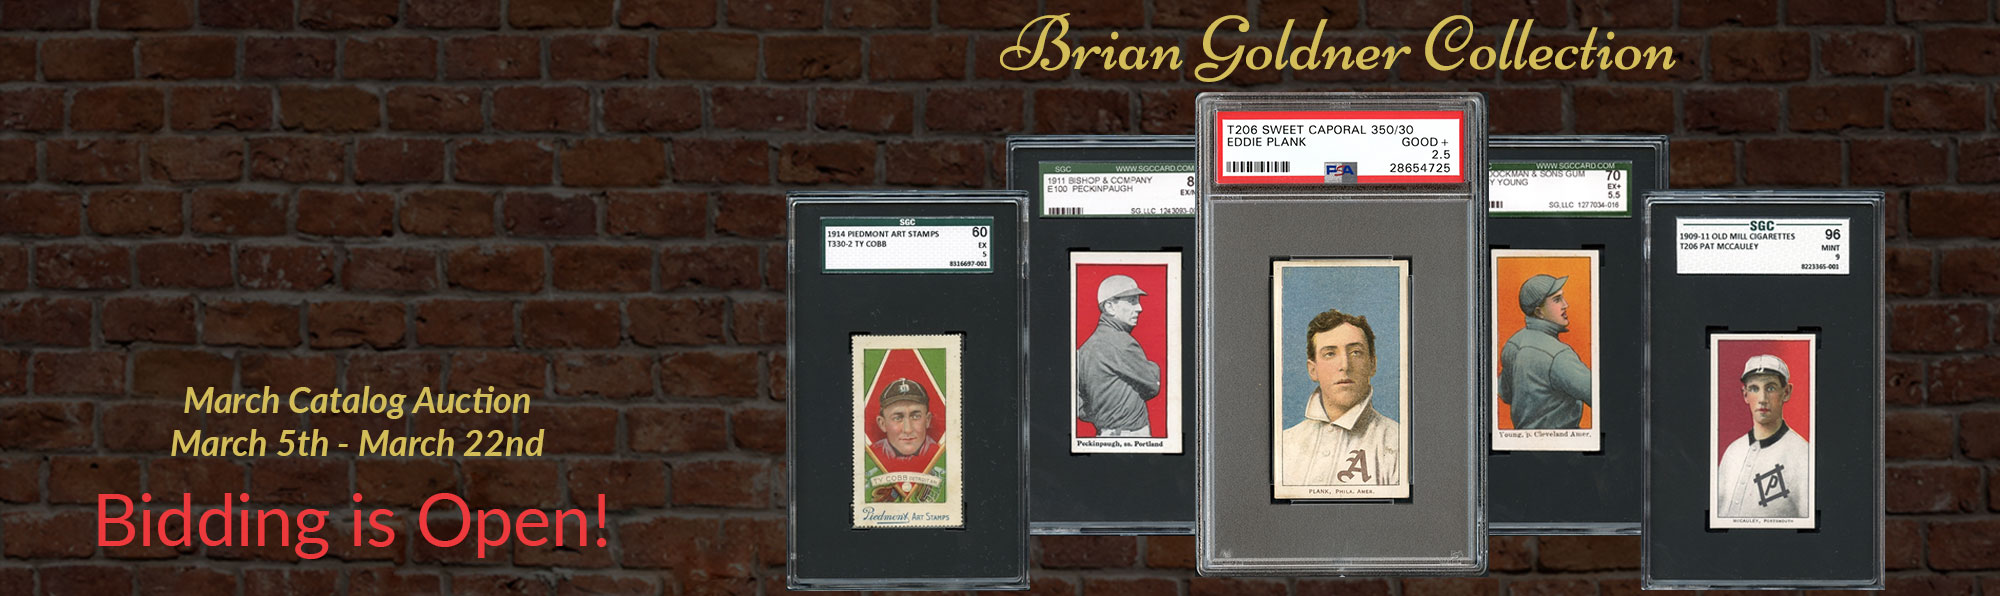 The Brian Goldner Collection